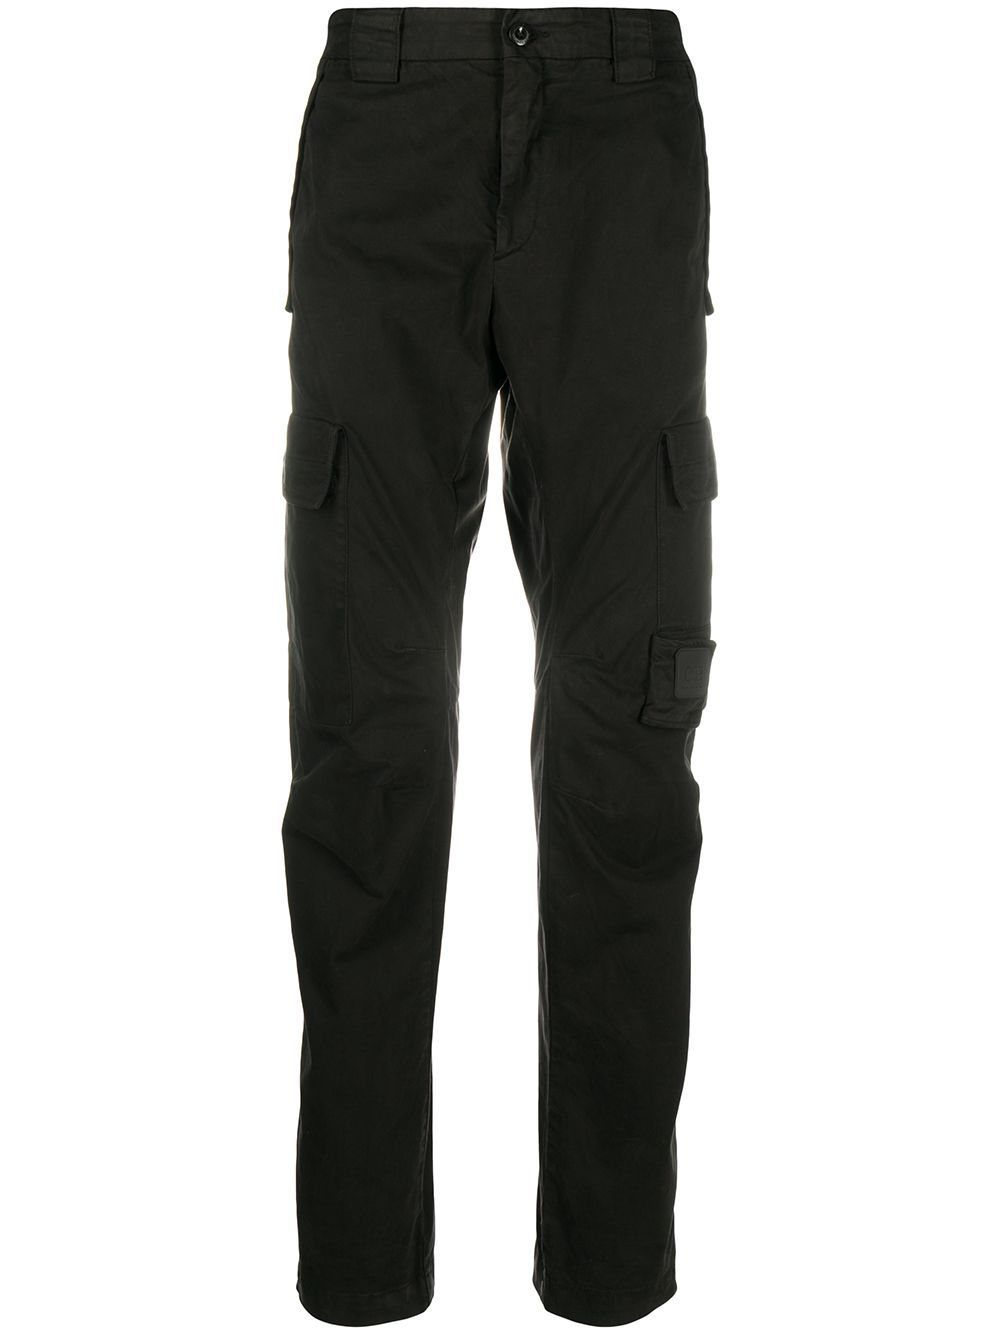 C.P COMPANY Lens Cargo Trousers Black